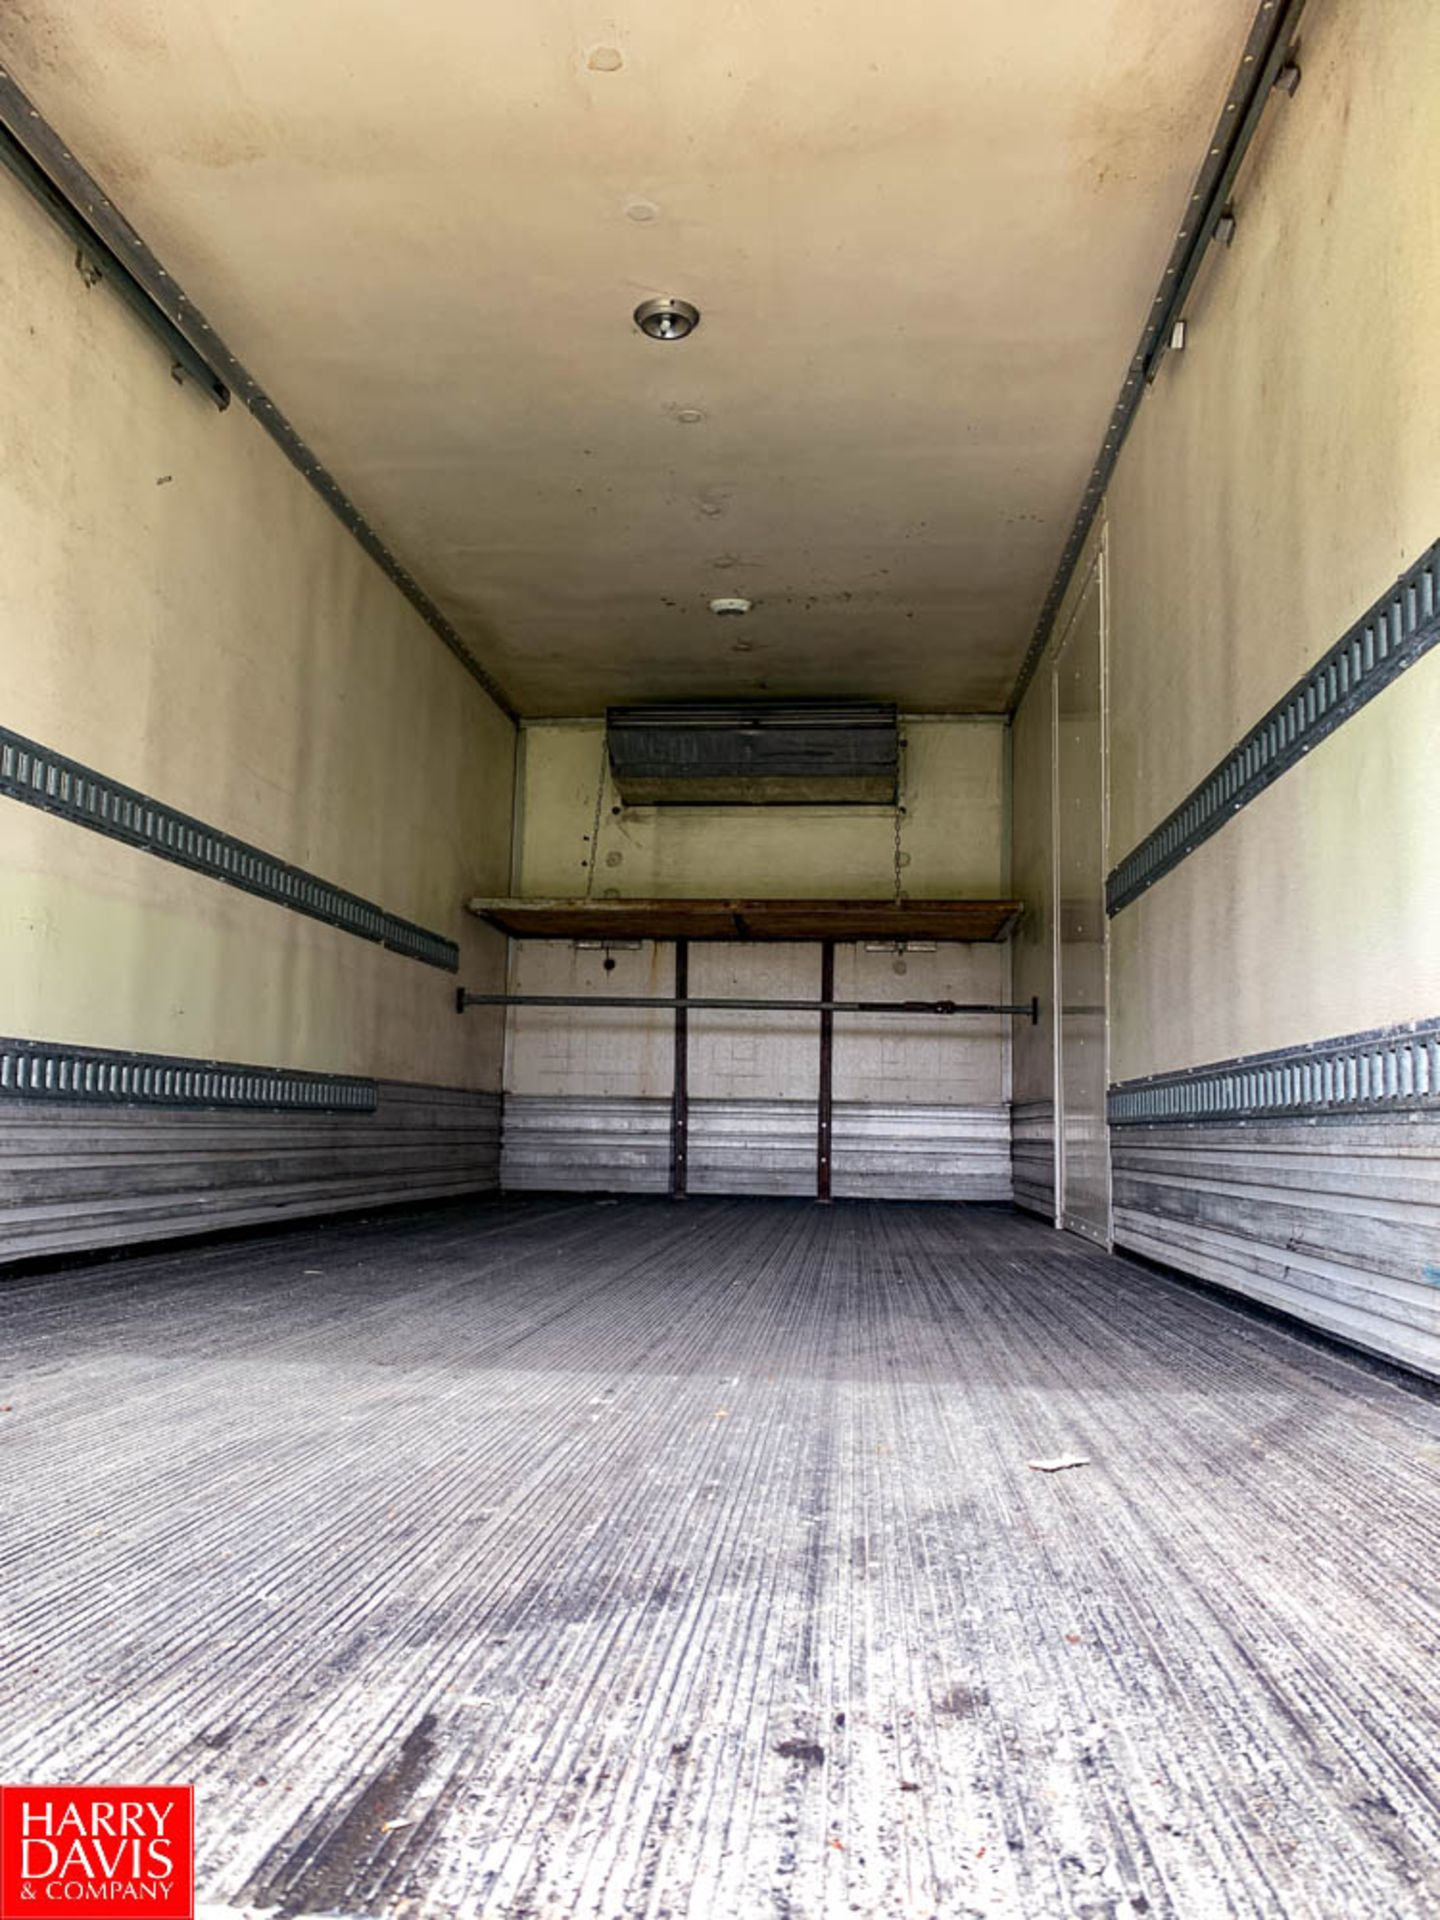 2006 Freightliner 20' Refrigerated Delivery Truck Model: M2106, 25,500 GVWR, Mercedes Benz 6.4 - Image 6 of 7